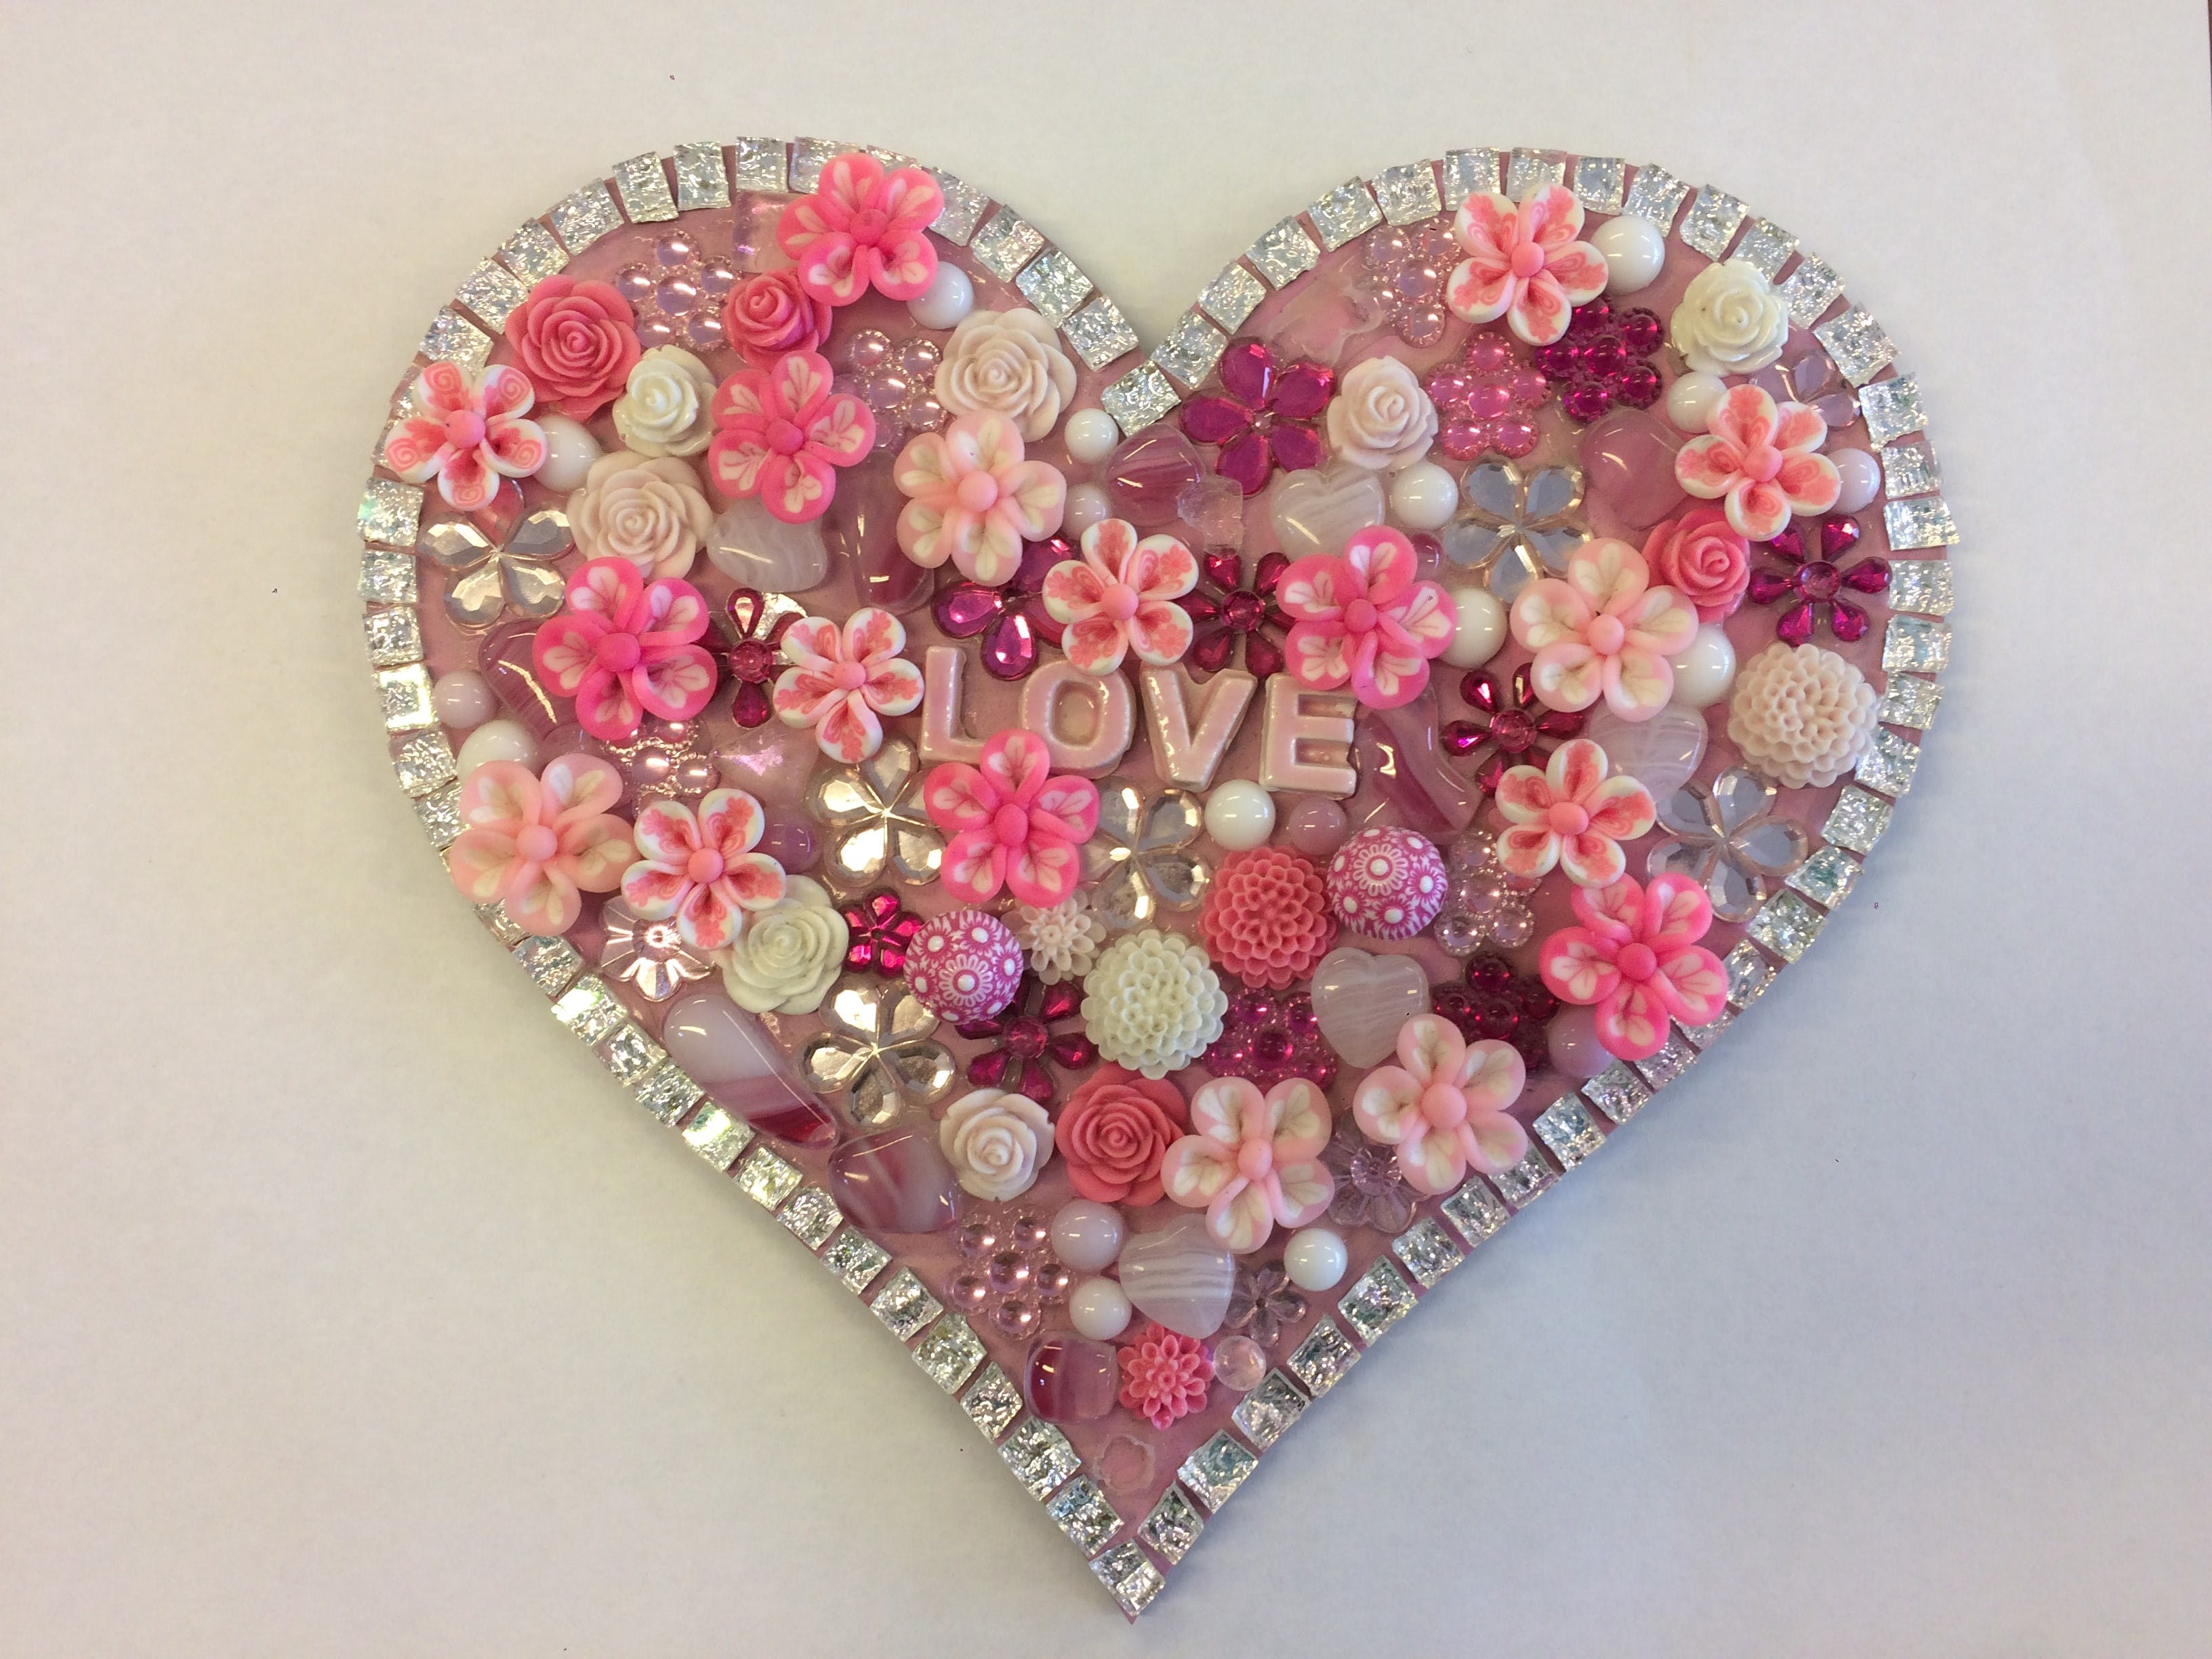 Flowers and Bling Mosaic Class for Kids - eAccommodation